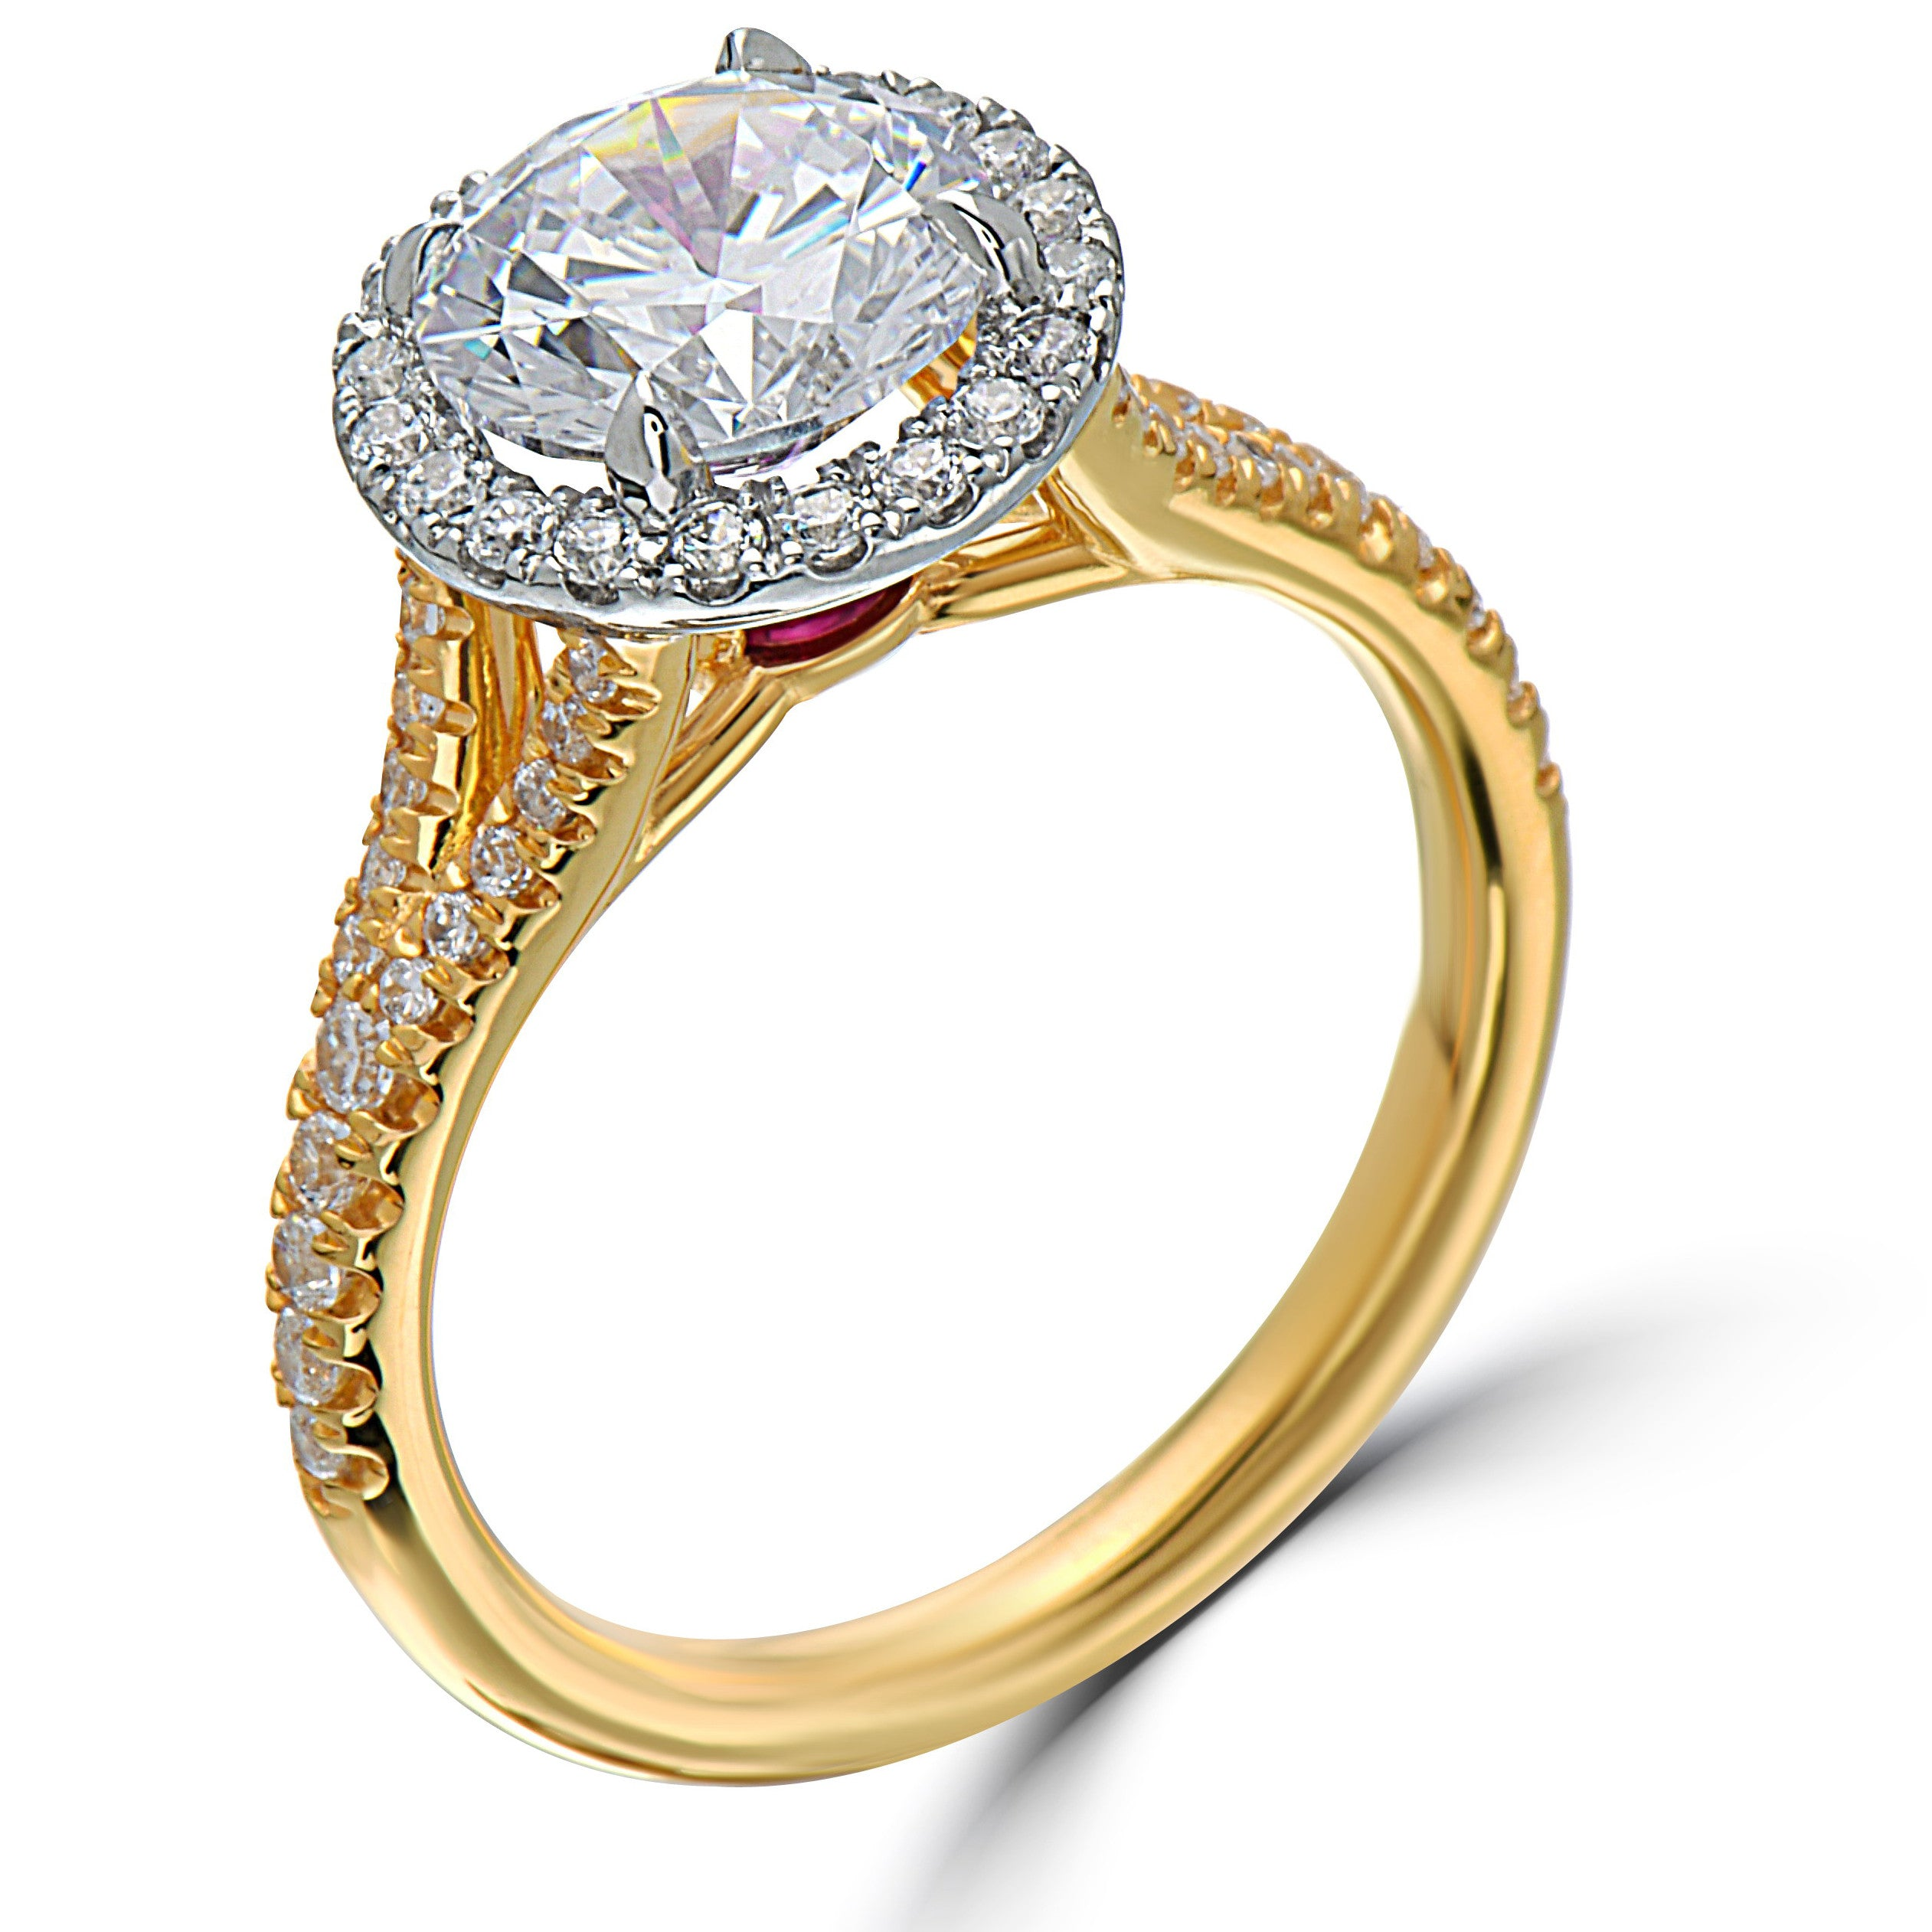 wedding classic meaning rings calculator patlu magic diamond antique radiant motu winston full carat engagement card wiki yellow size price circular chips of value harry ring